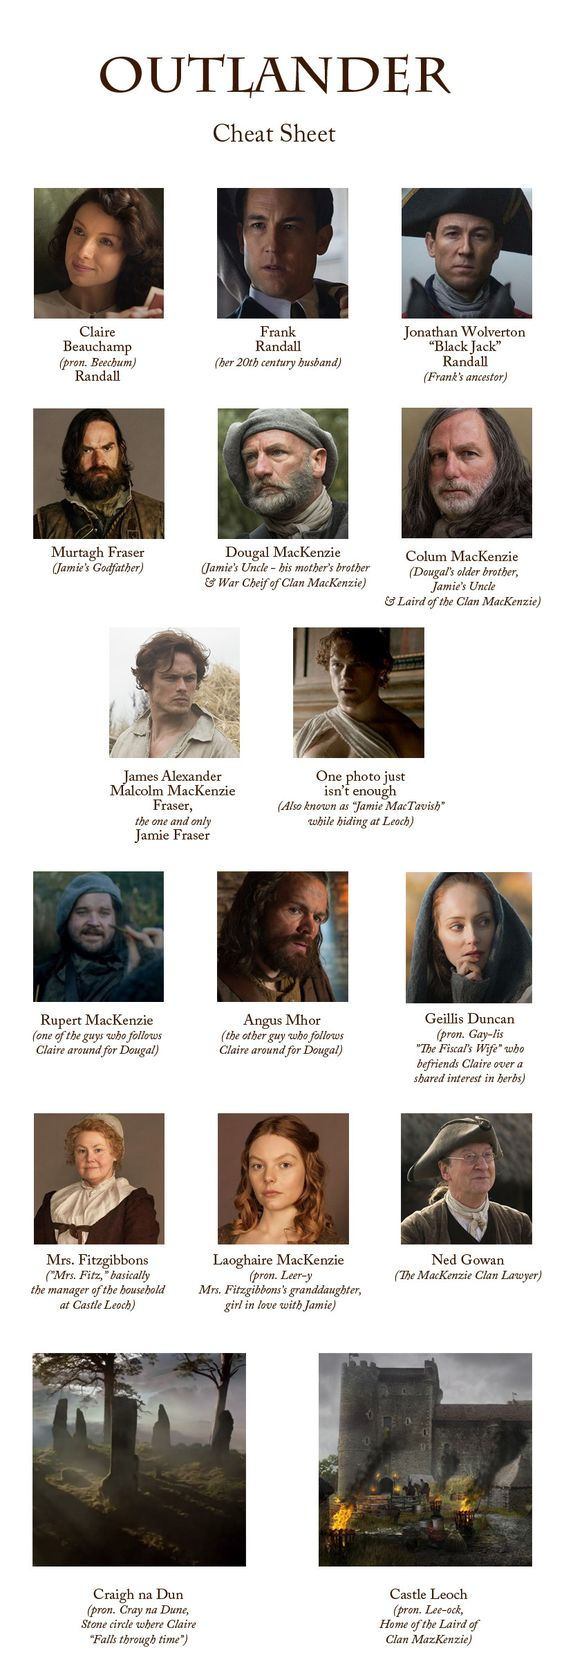 Some of my friends haven't read the Outlander books & get confused about the characters, so I made them a reference guide...thought I'd share in case anyone else found it helpful. Could have left Jamie & Claire off, since everyone knows who they are ;) #Outlander